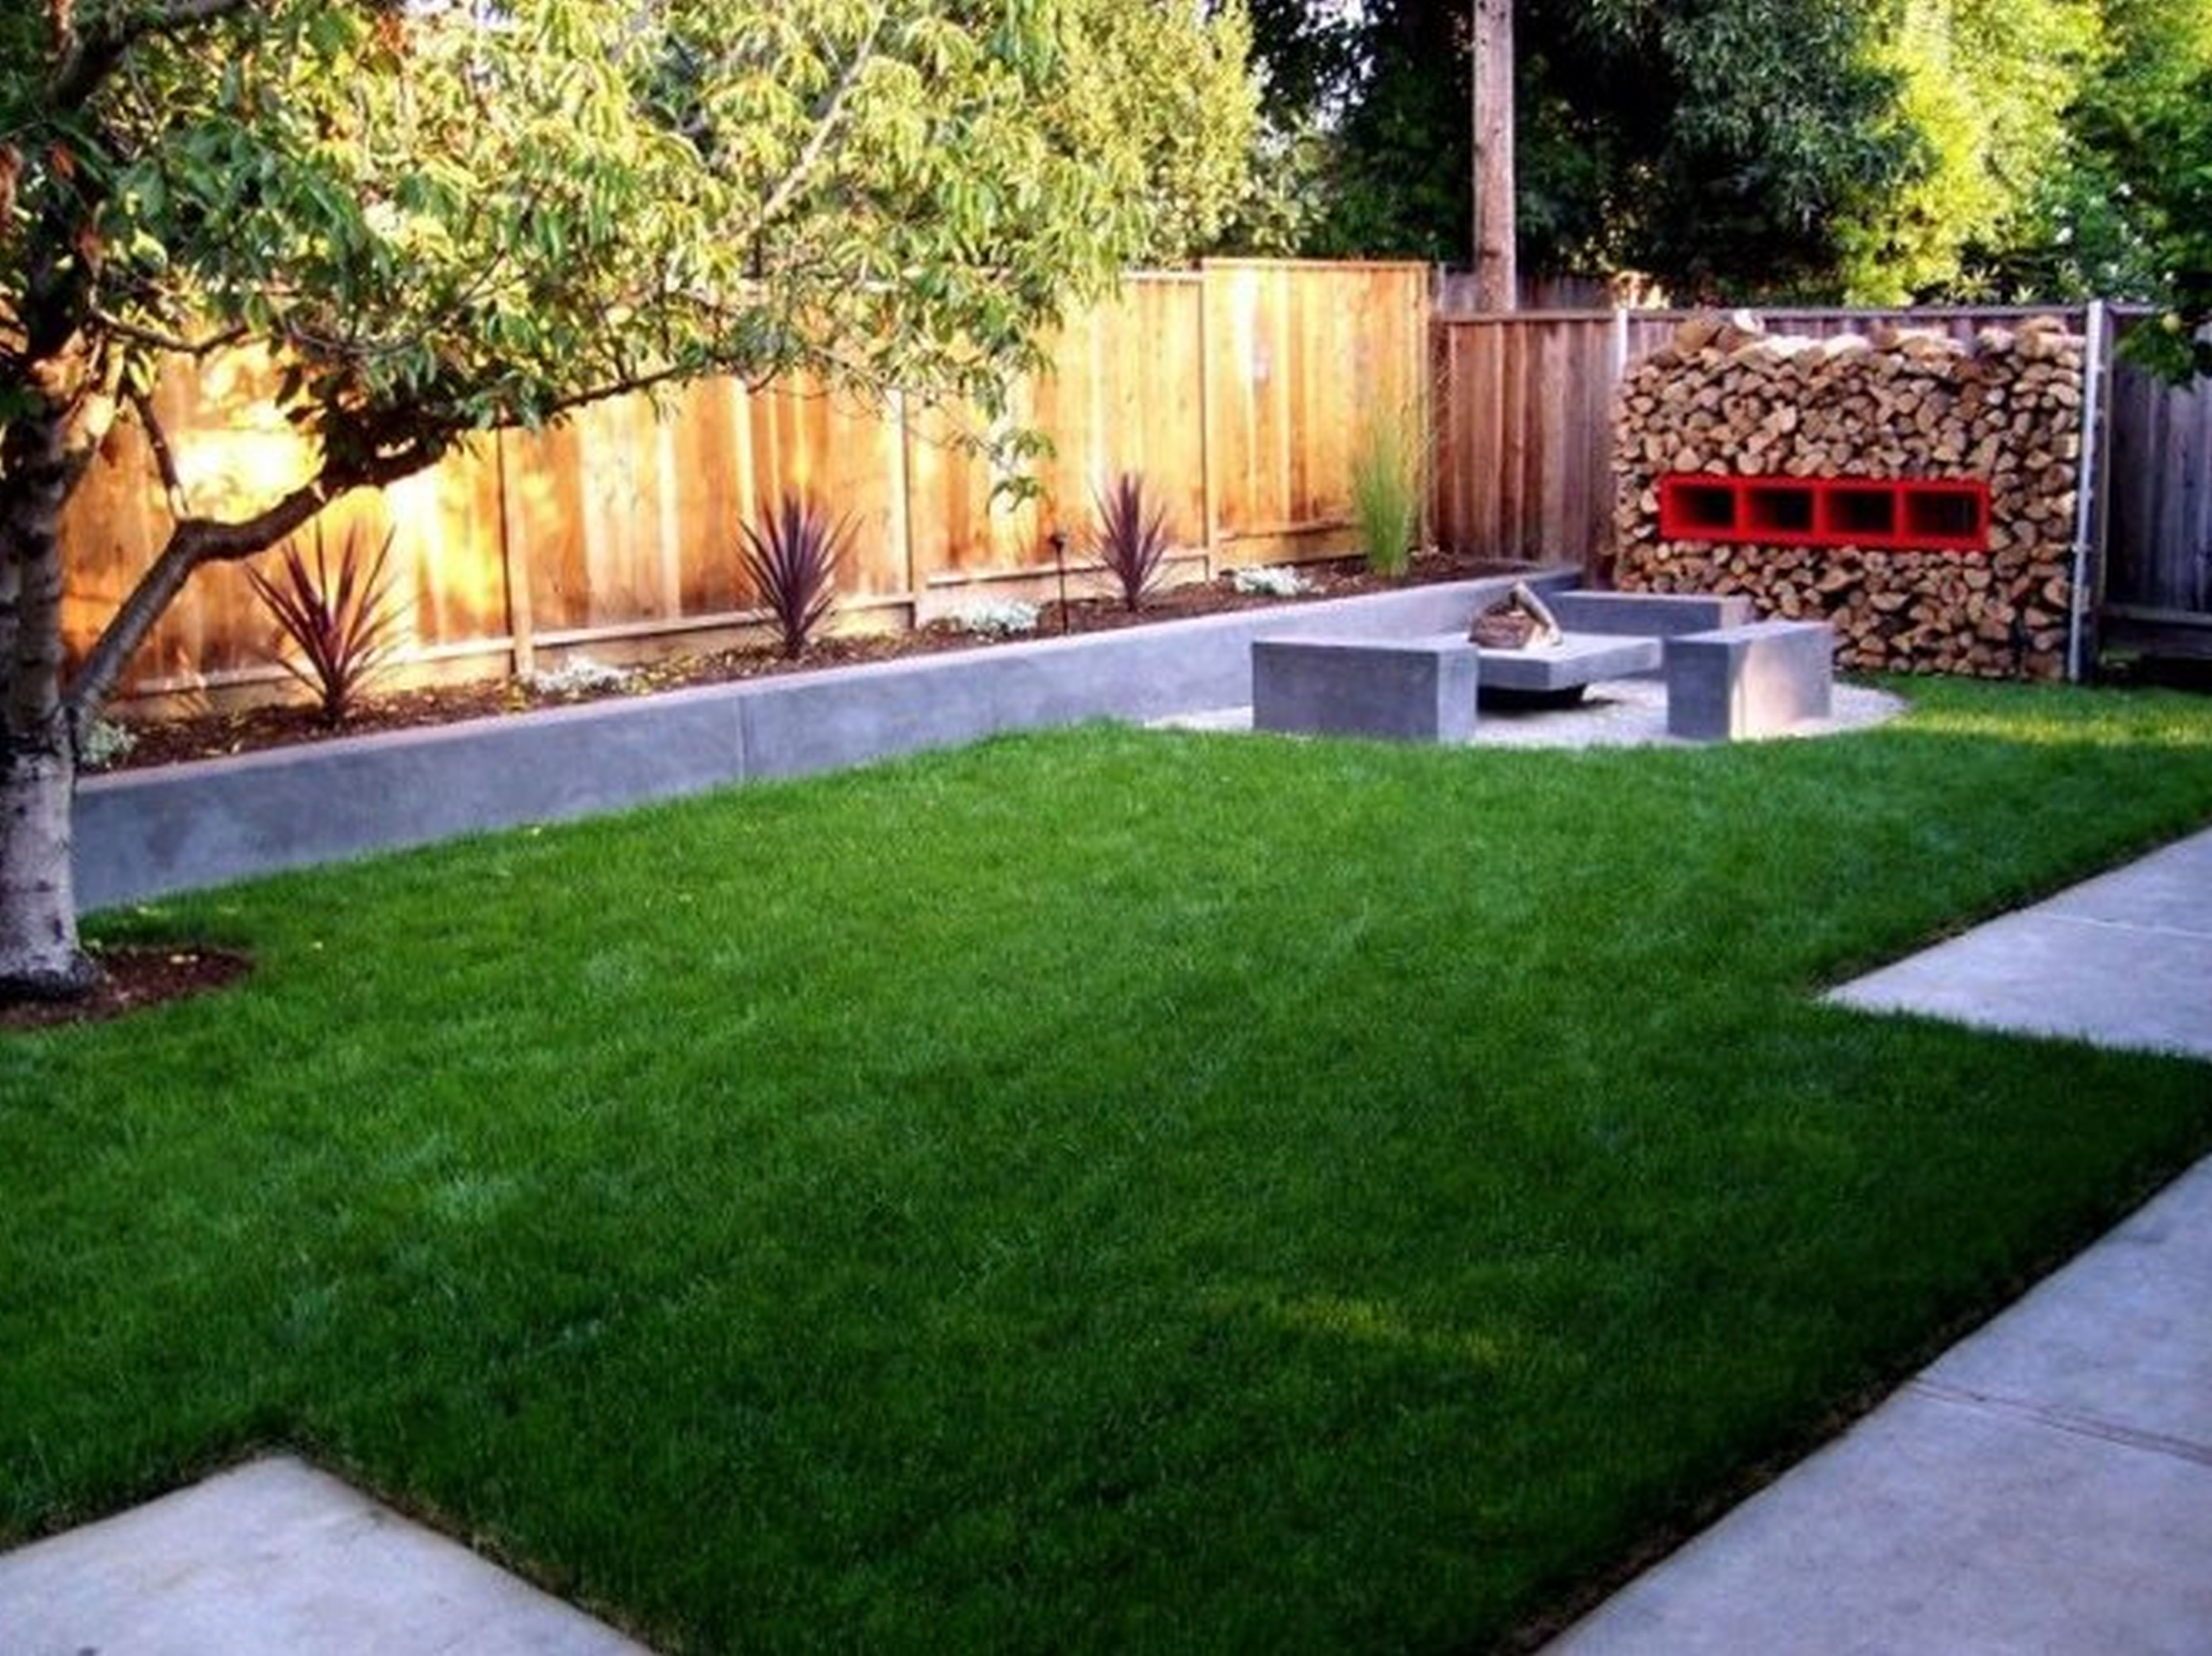 Awesome Wood Storage near Simple Seat plus Green Grass fit to Backyard Garden Ideas